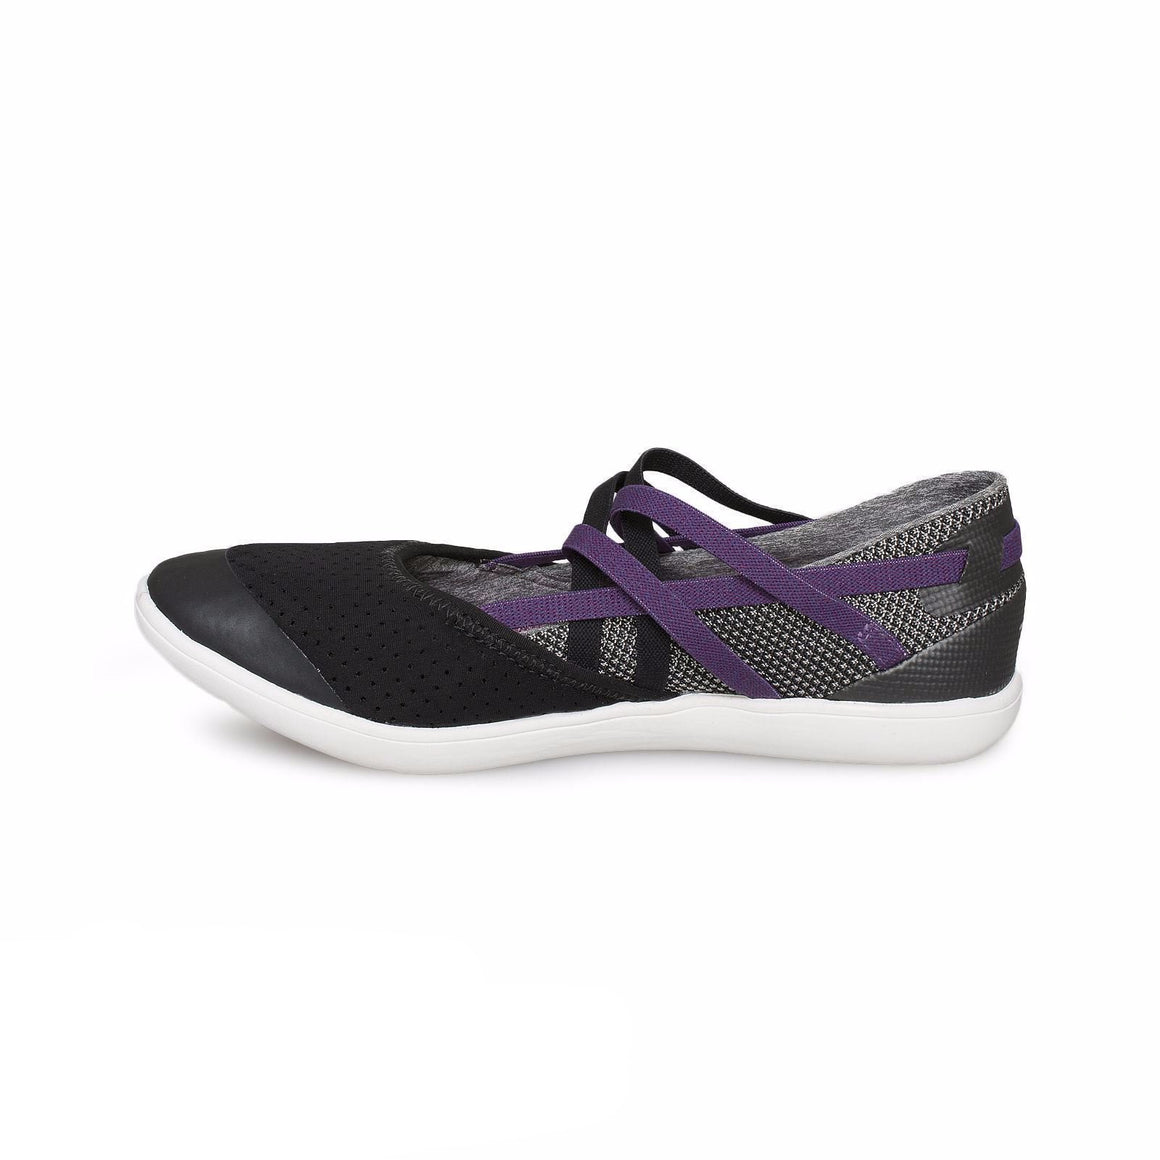 Teva Hydro Life Slip On Black Shoes